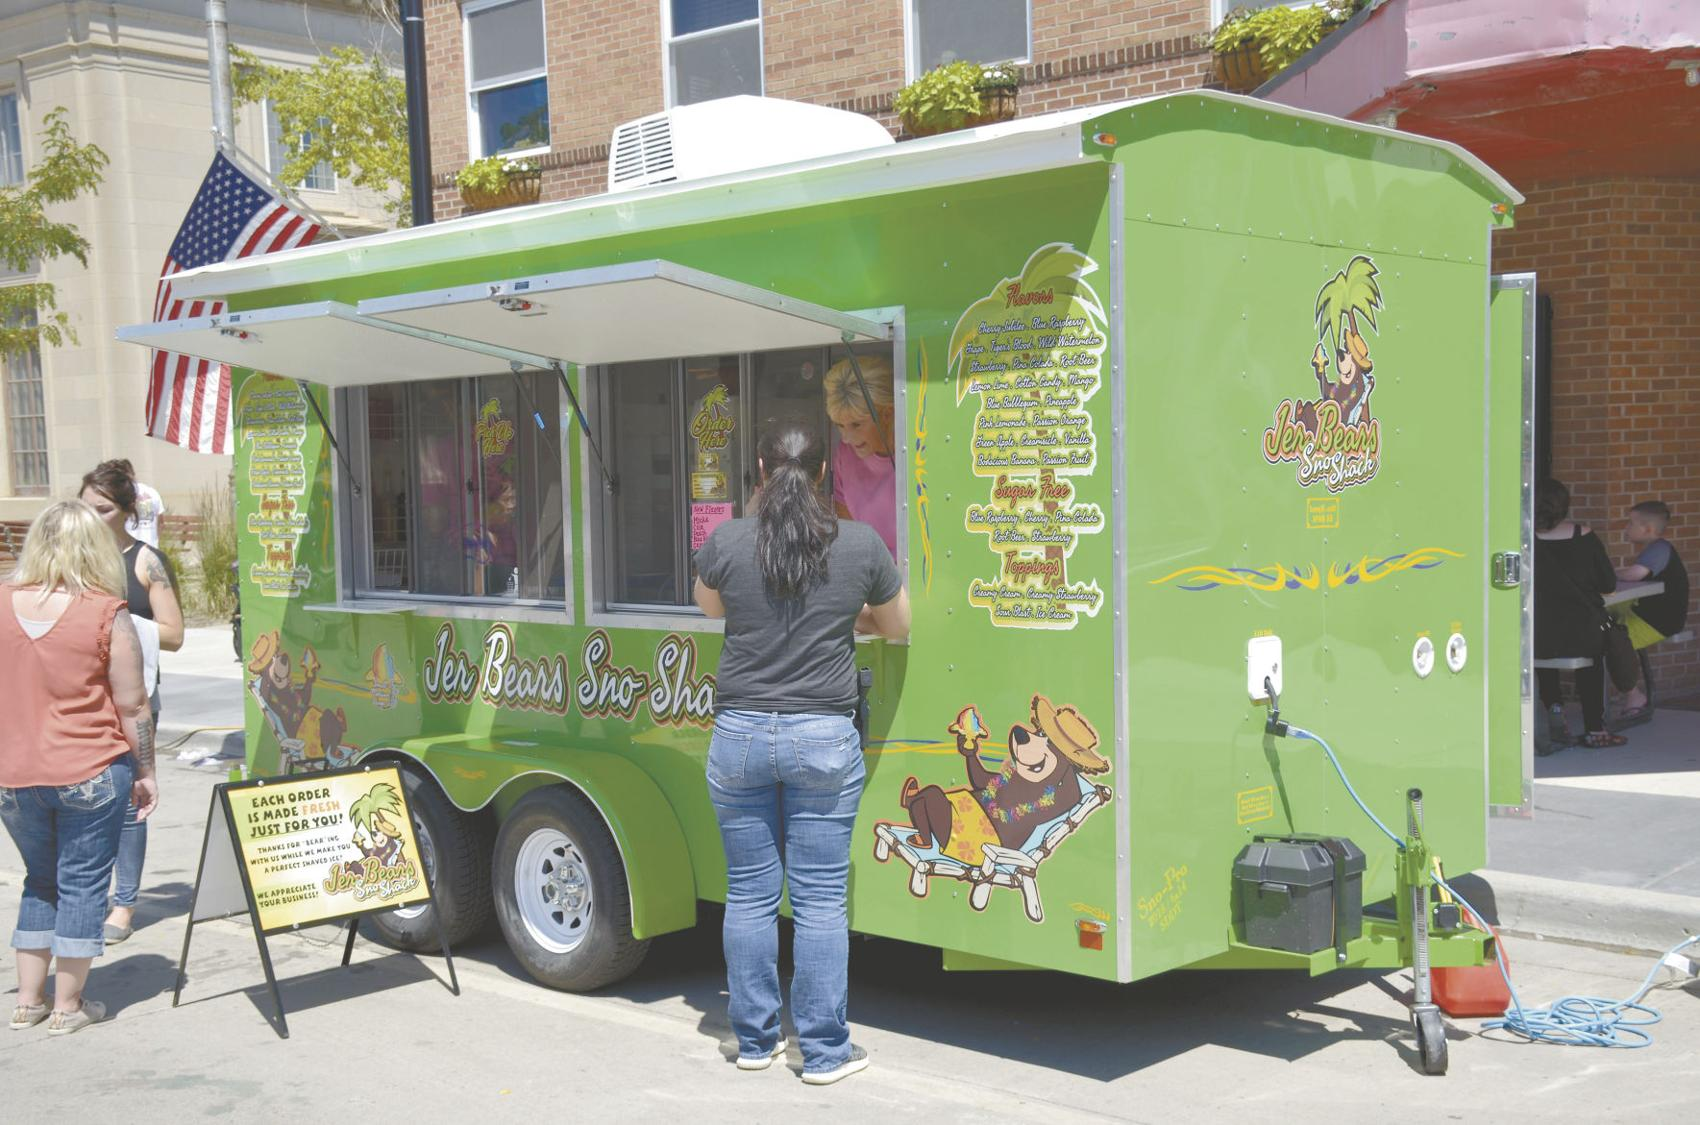 North Dakota City Commission votes to allow food trucks